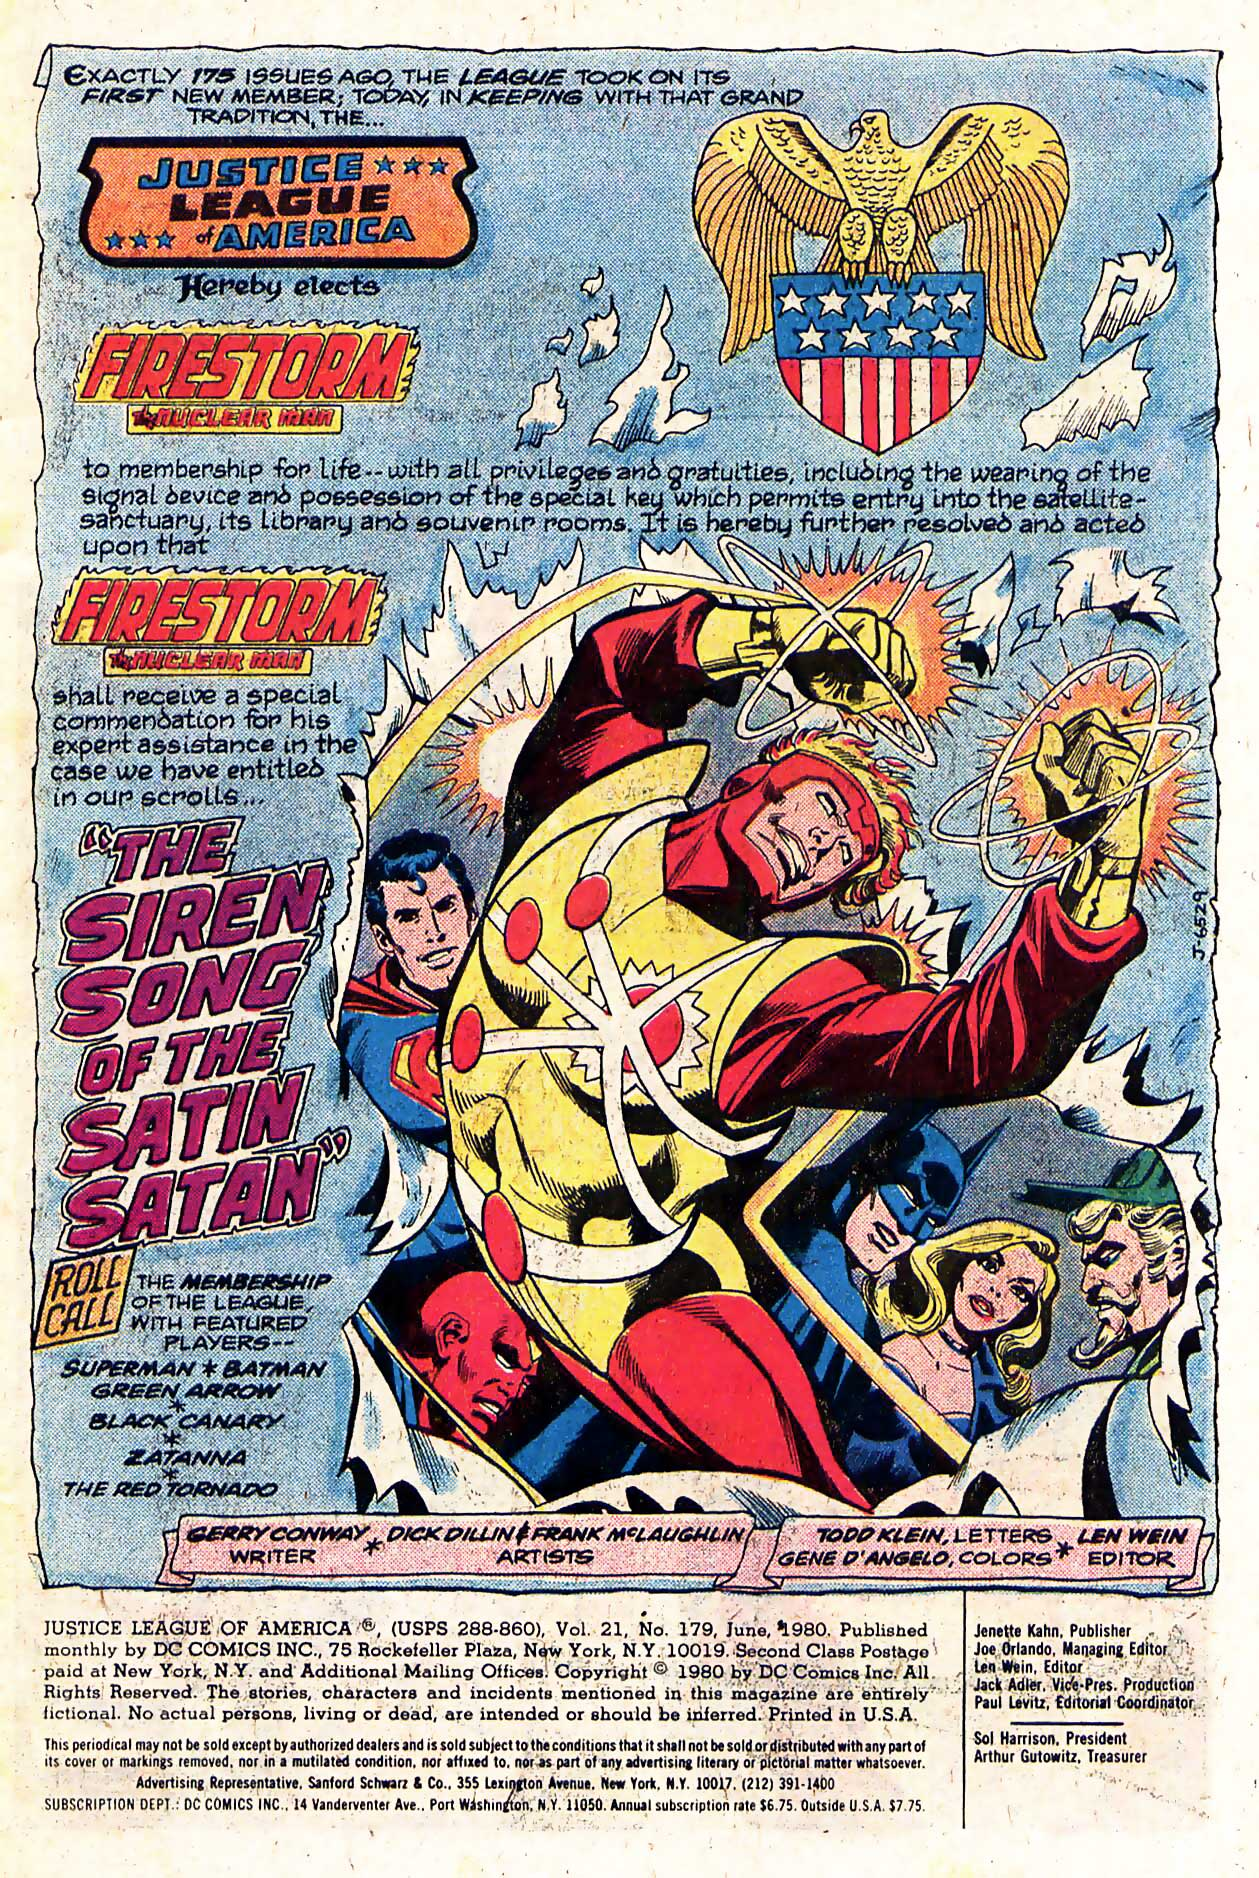 Justice League of America #179 opening splash page